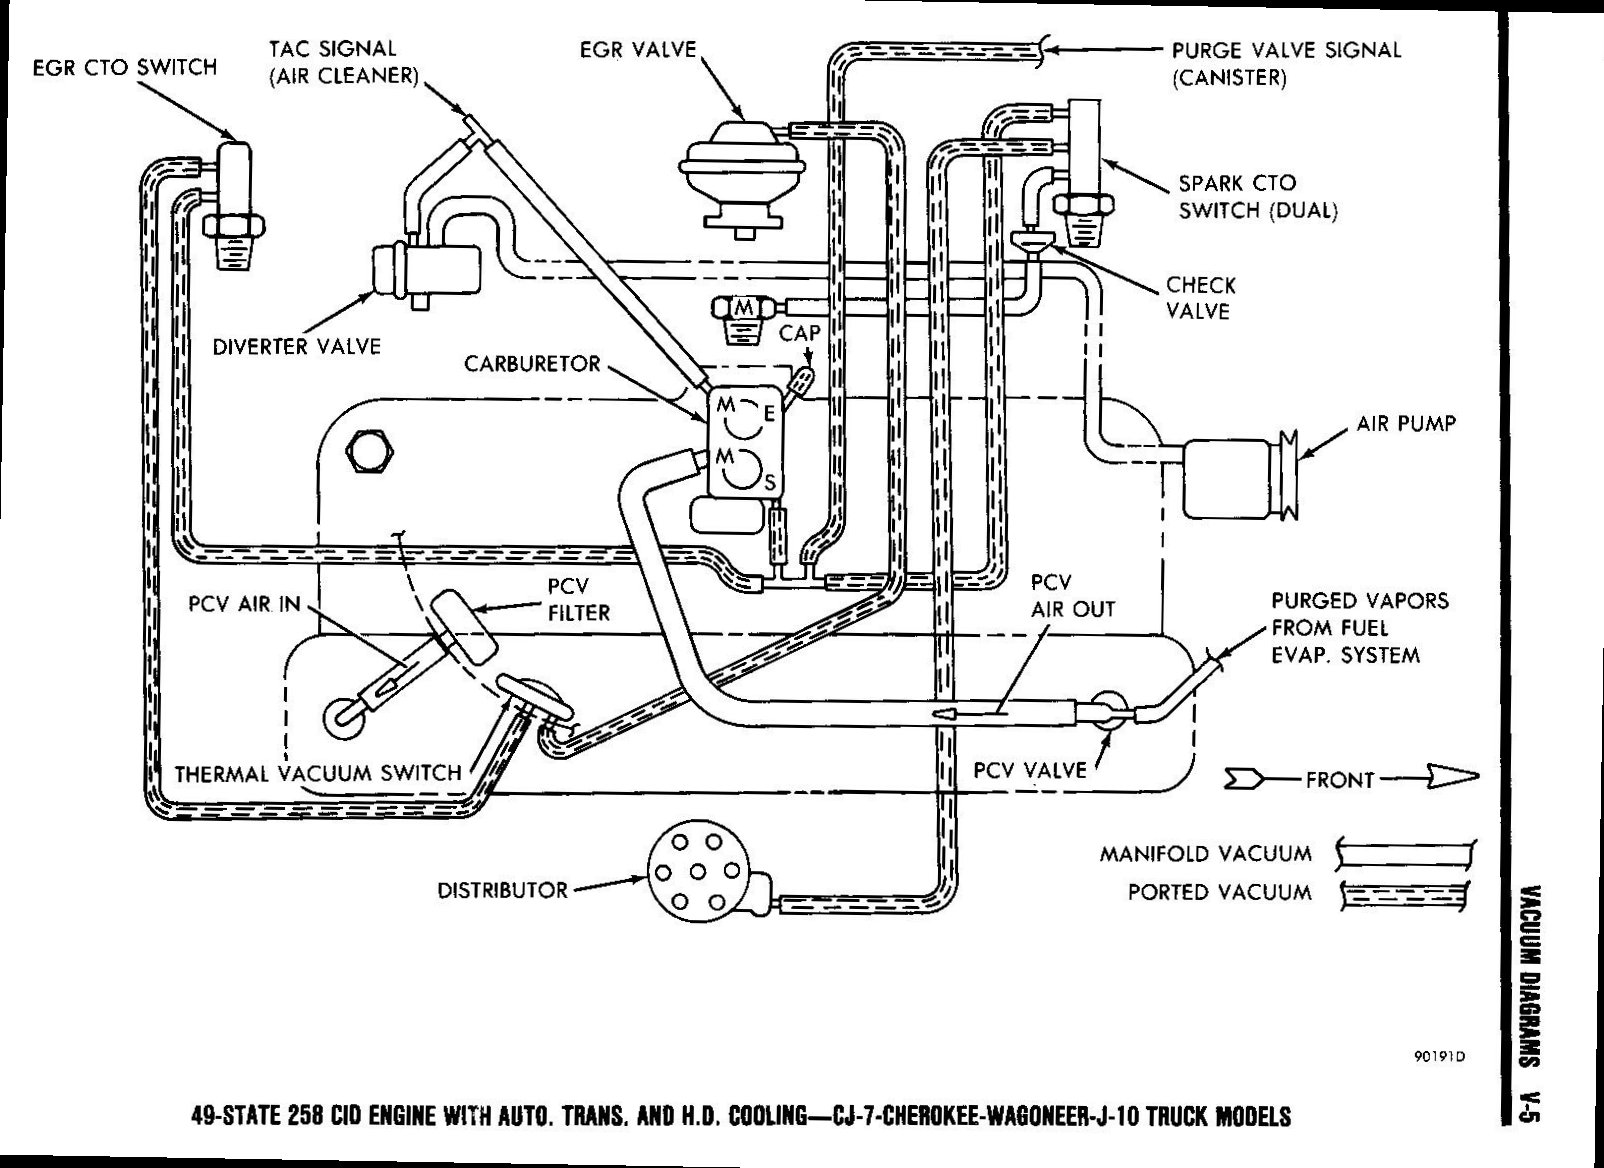 1977 Jeep Cj7 Wiring Diagram 258 Data Diagrams Harness Engine Smart U2022 Rh Emgsolutions Co Large